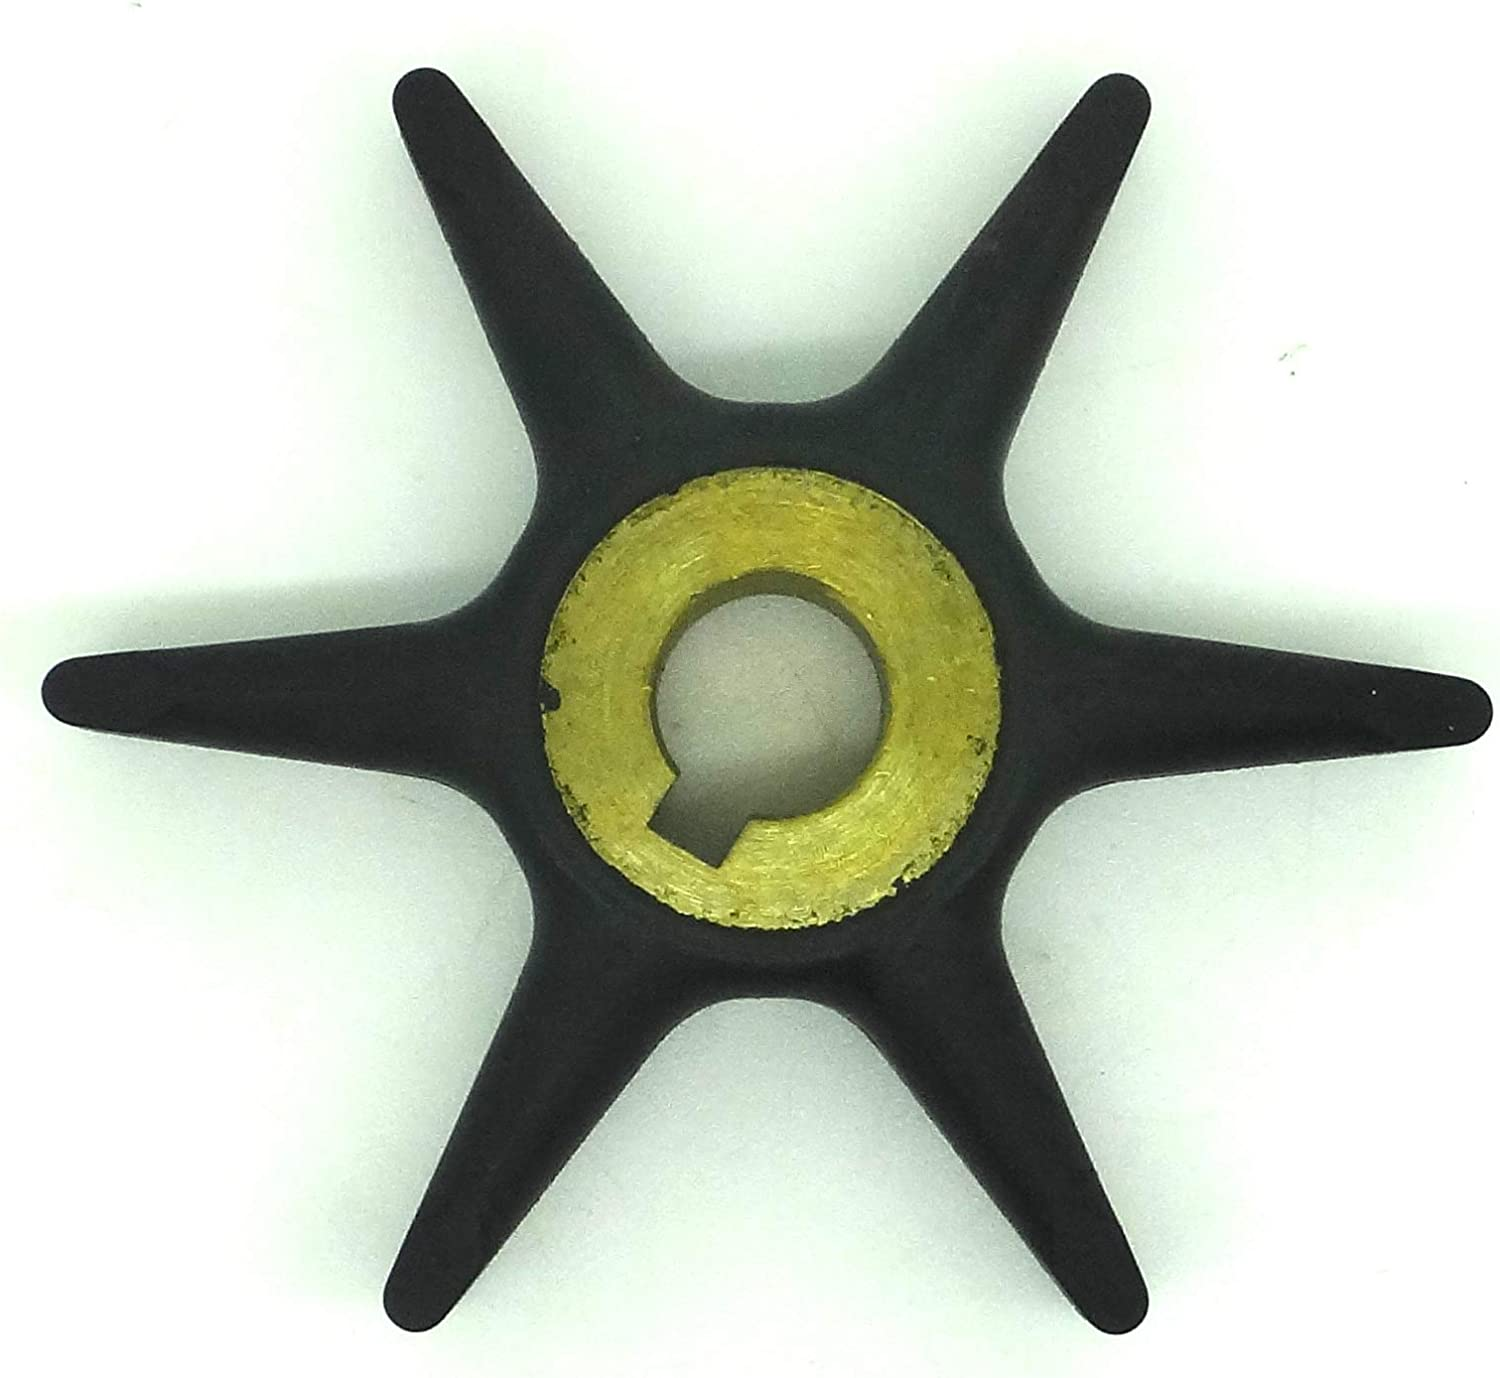 Johnson Evinrude 3 4 5 5.5 6 7.5 HP Water Pump Impeller 277181 434424 18-3001